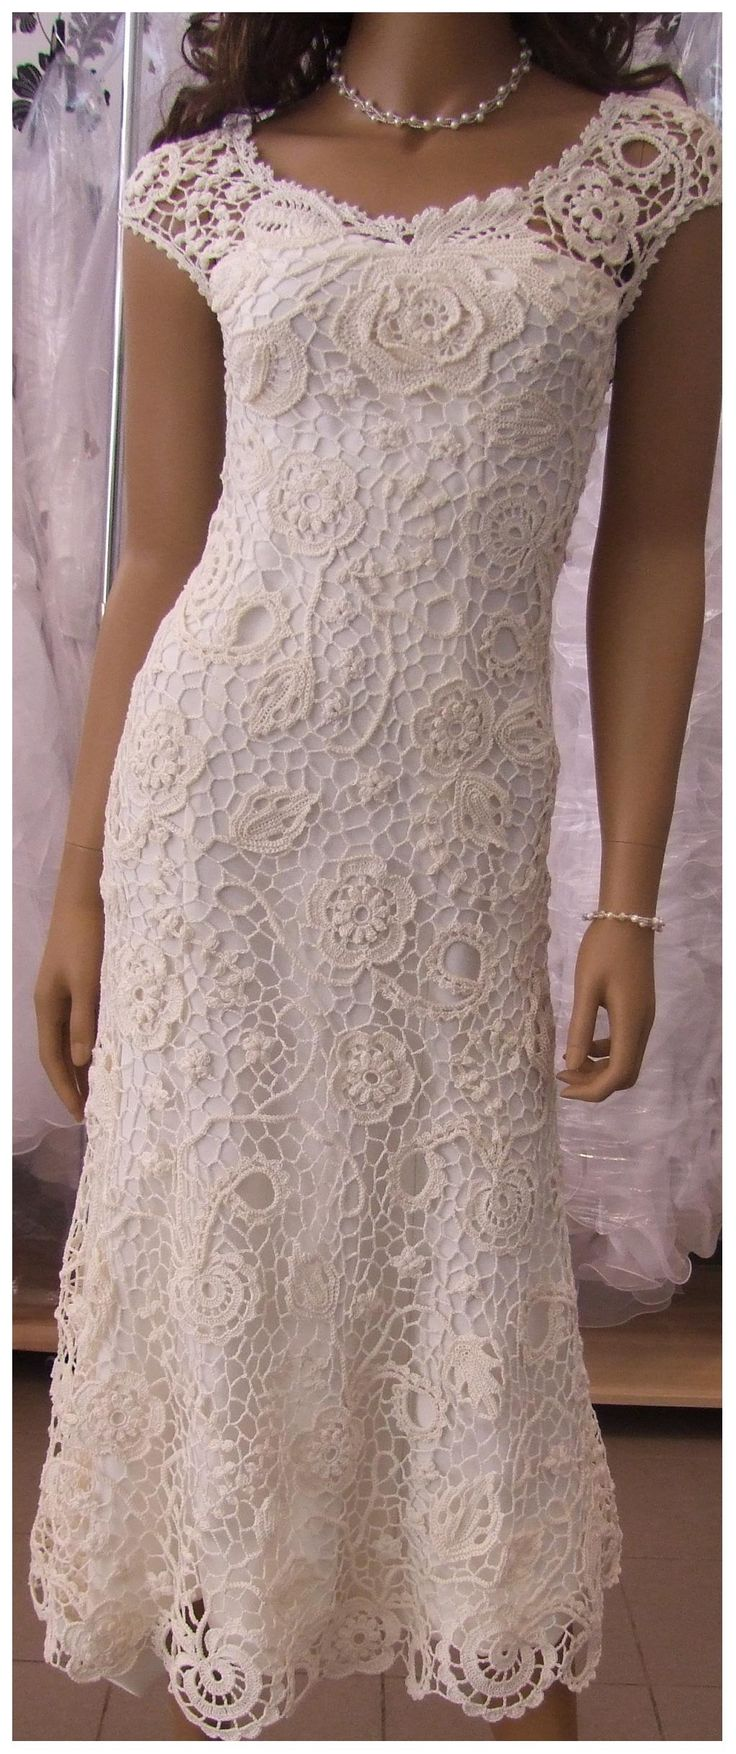 Best 25+ Crochet wedding dress pattern ideas on Pinterest